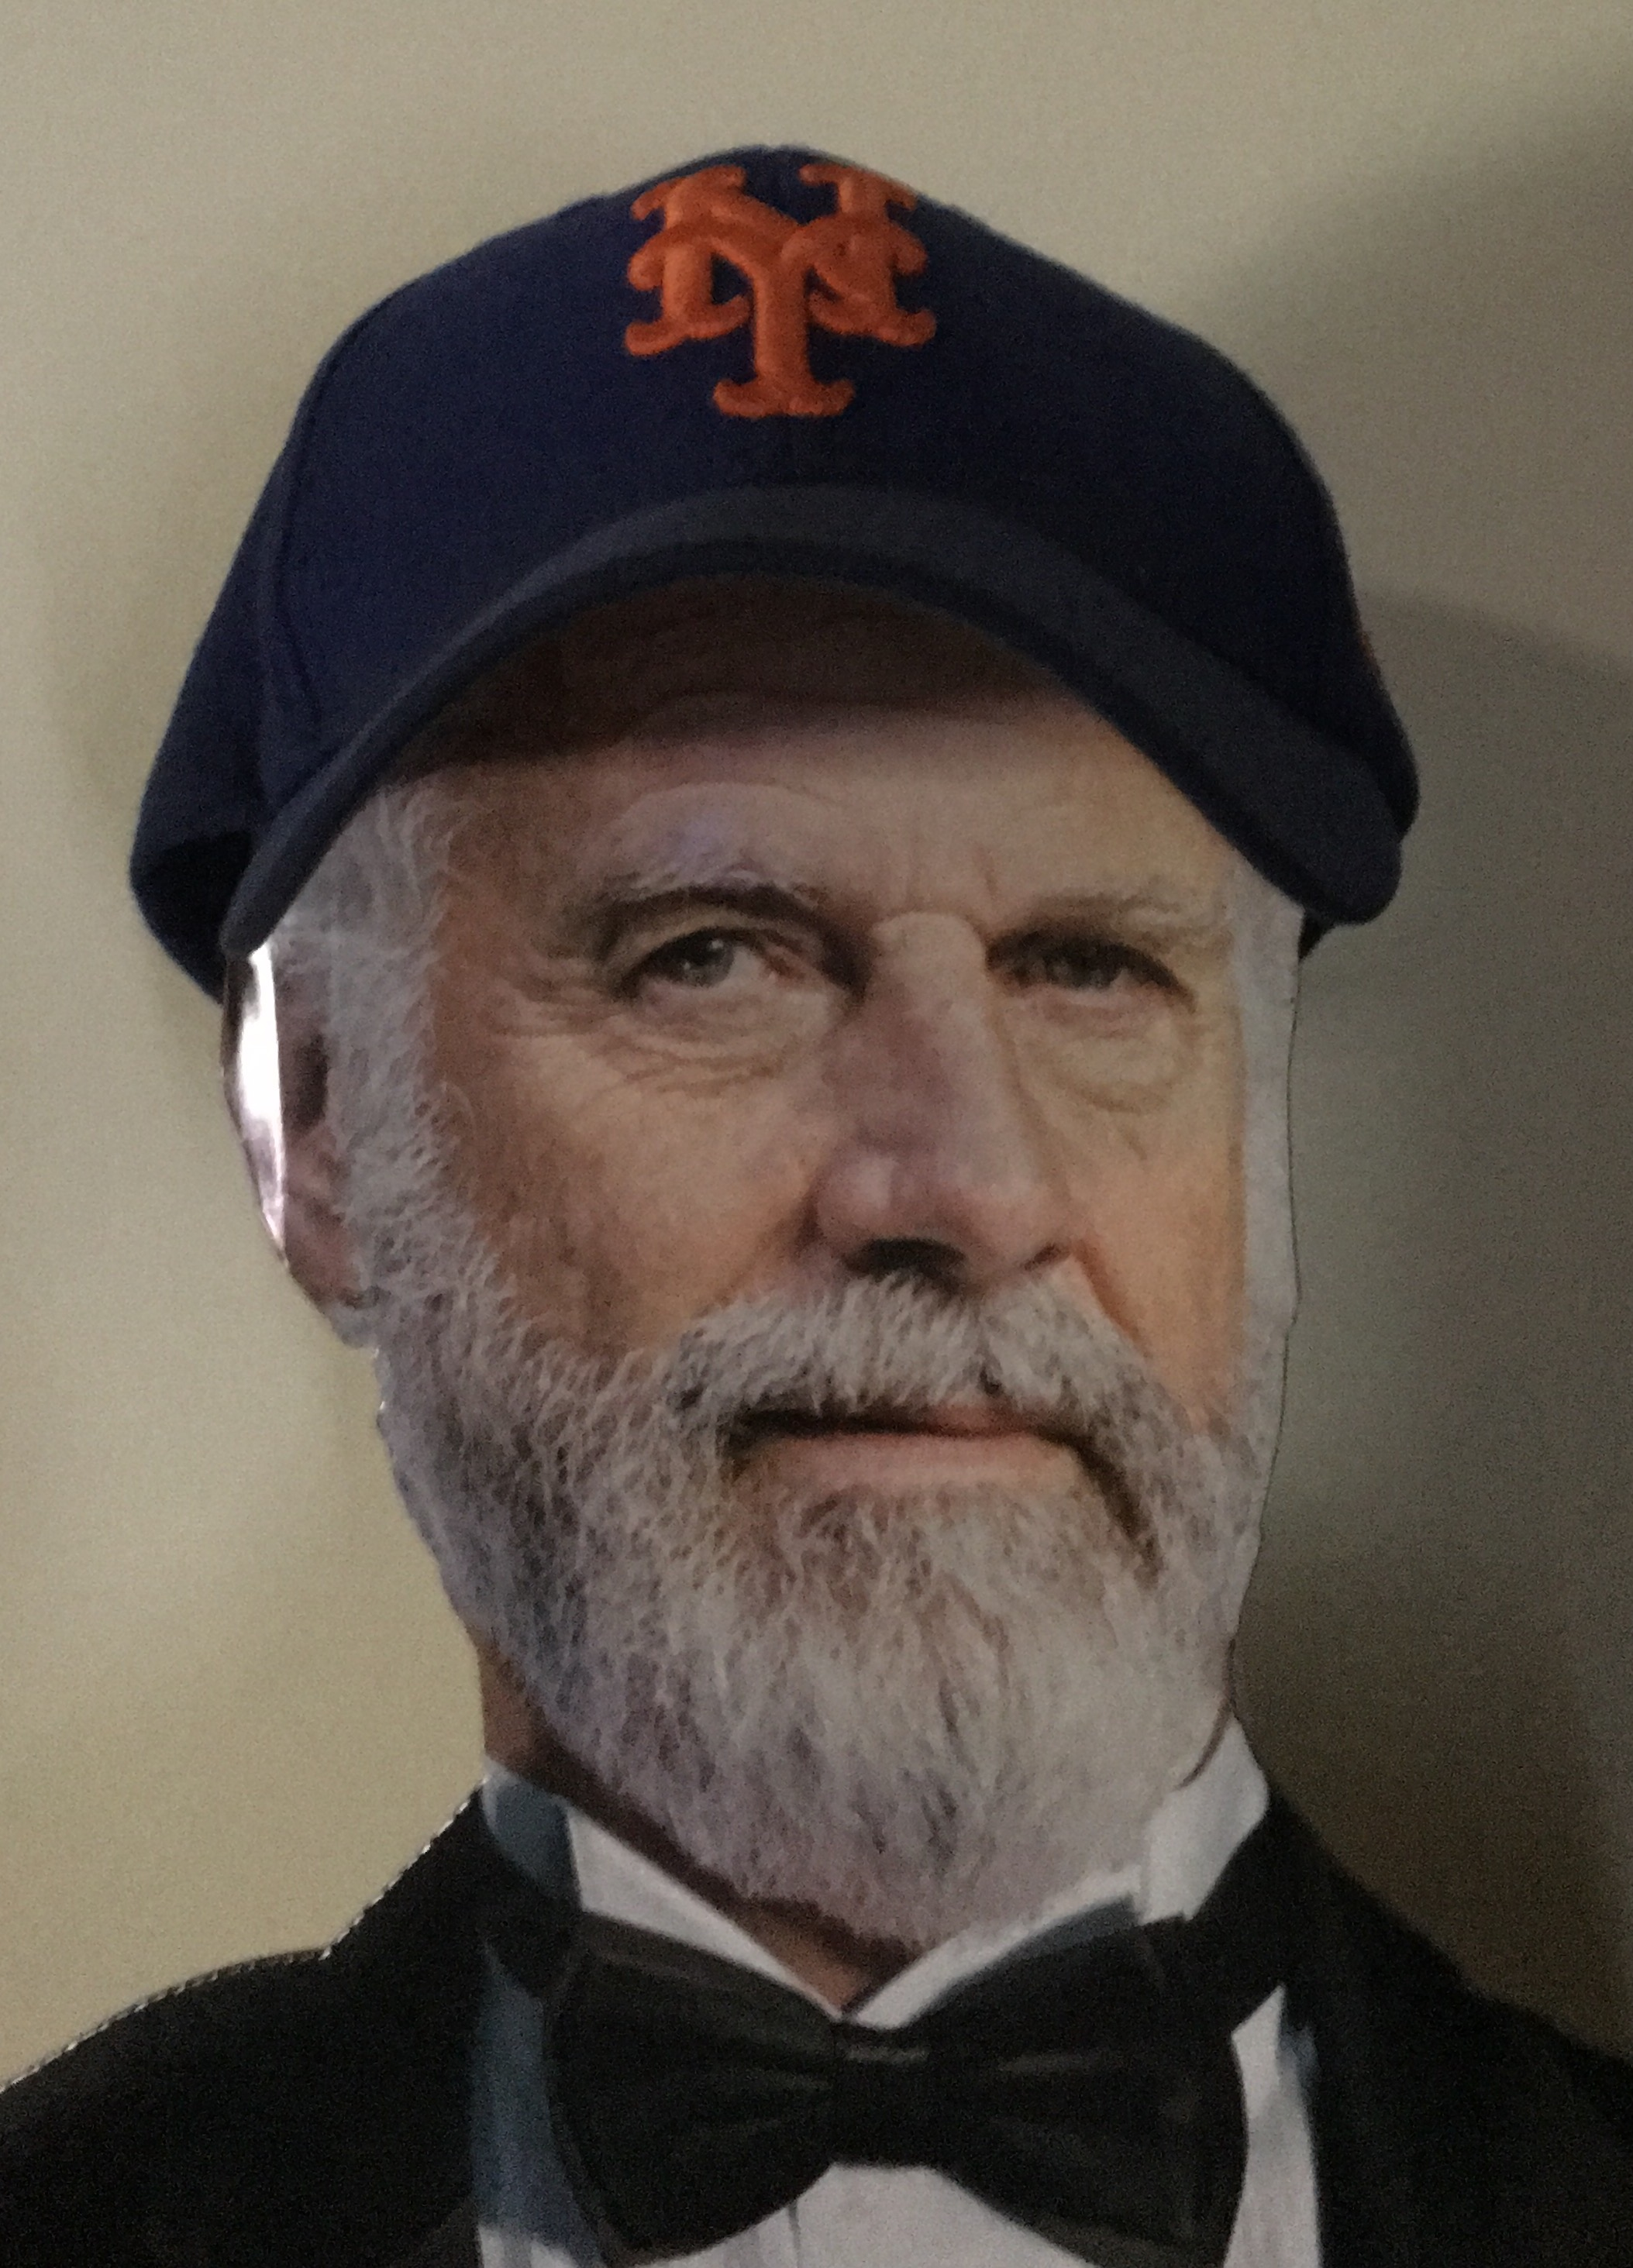 I don't always watch baseball...but when I do, I prefer the New York Mets. Keep believing my friends...